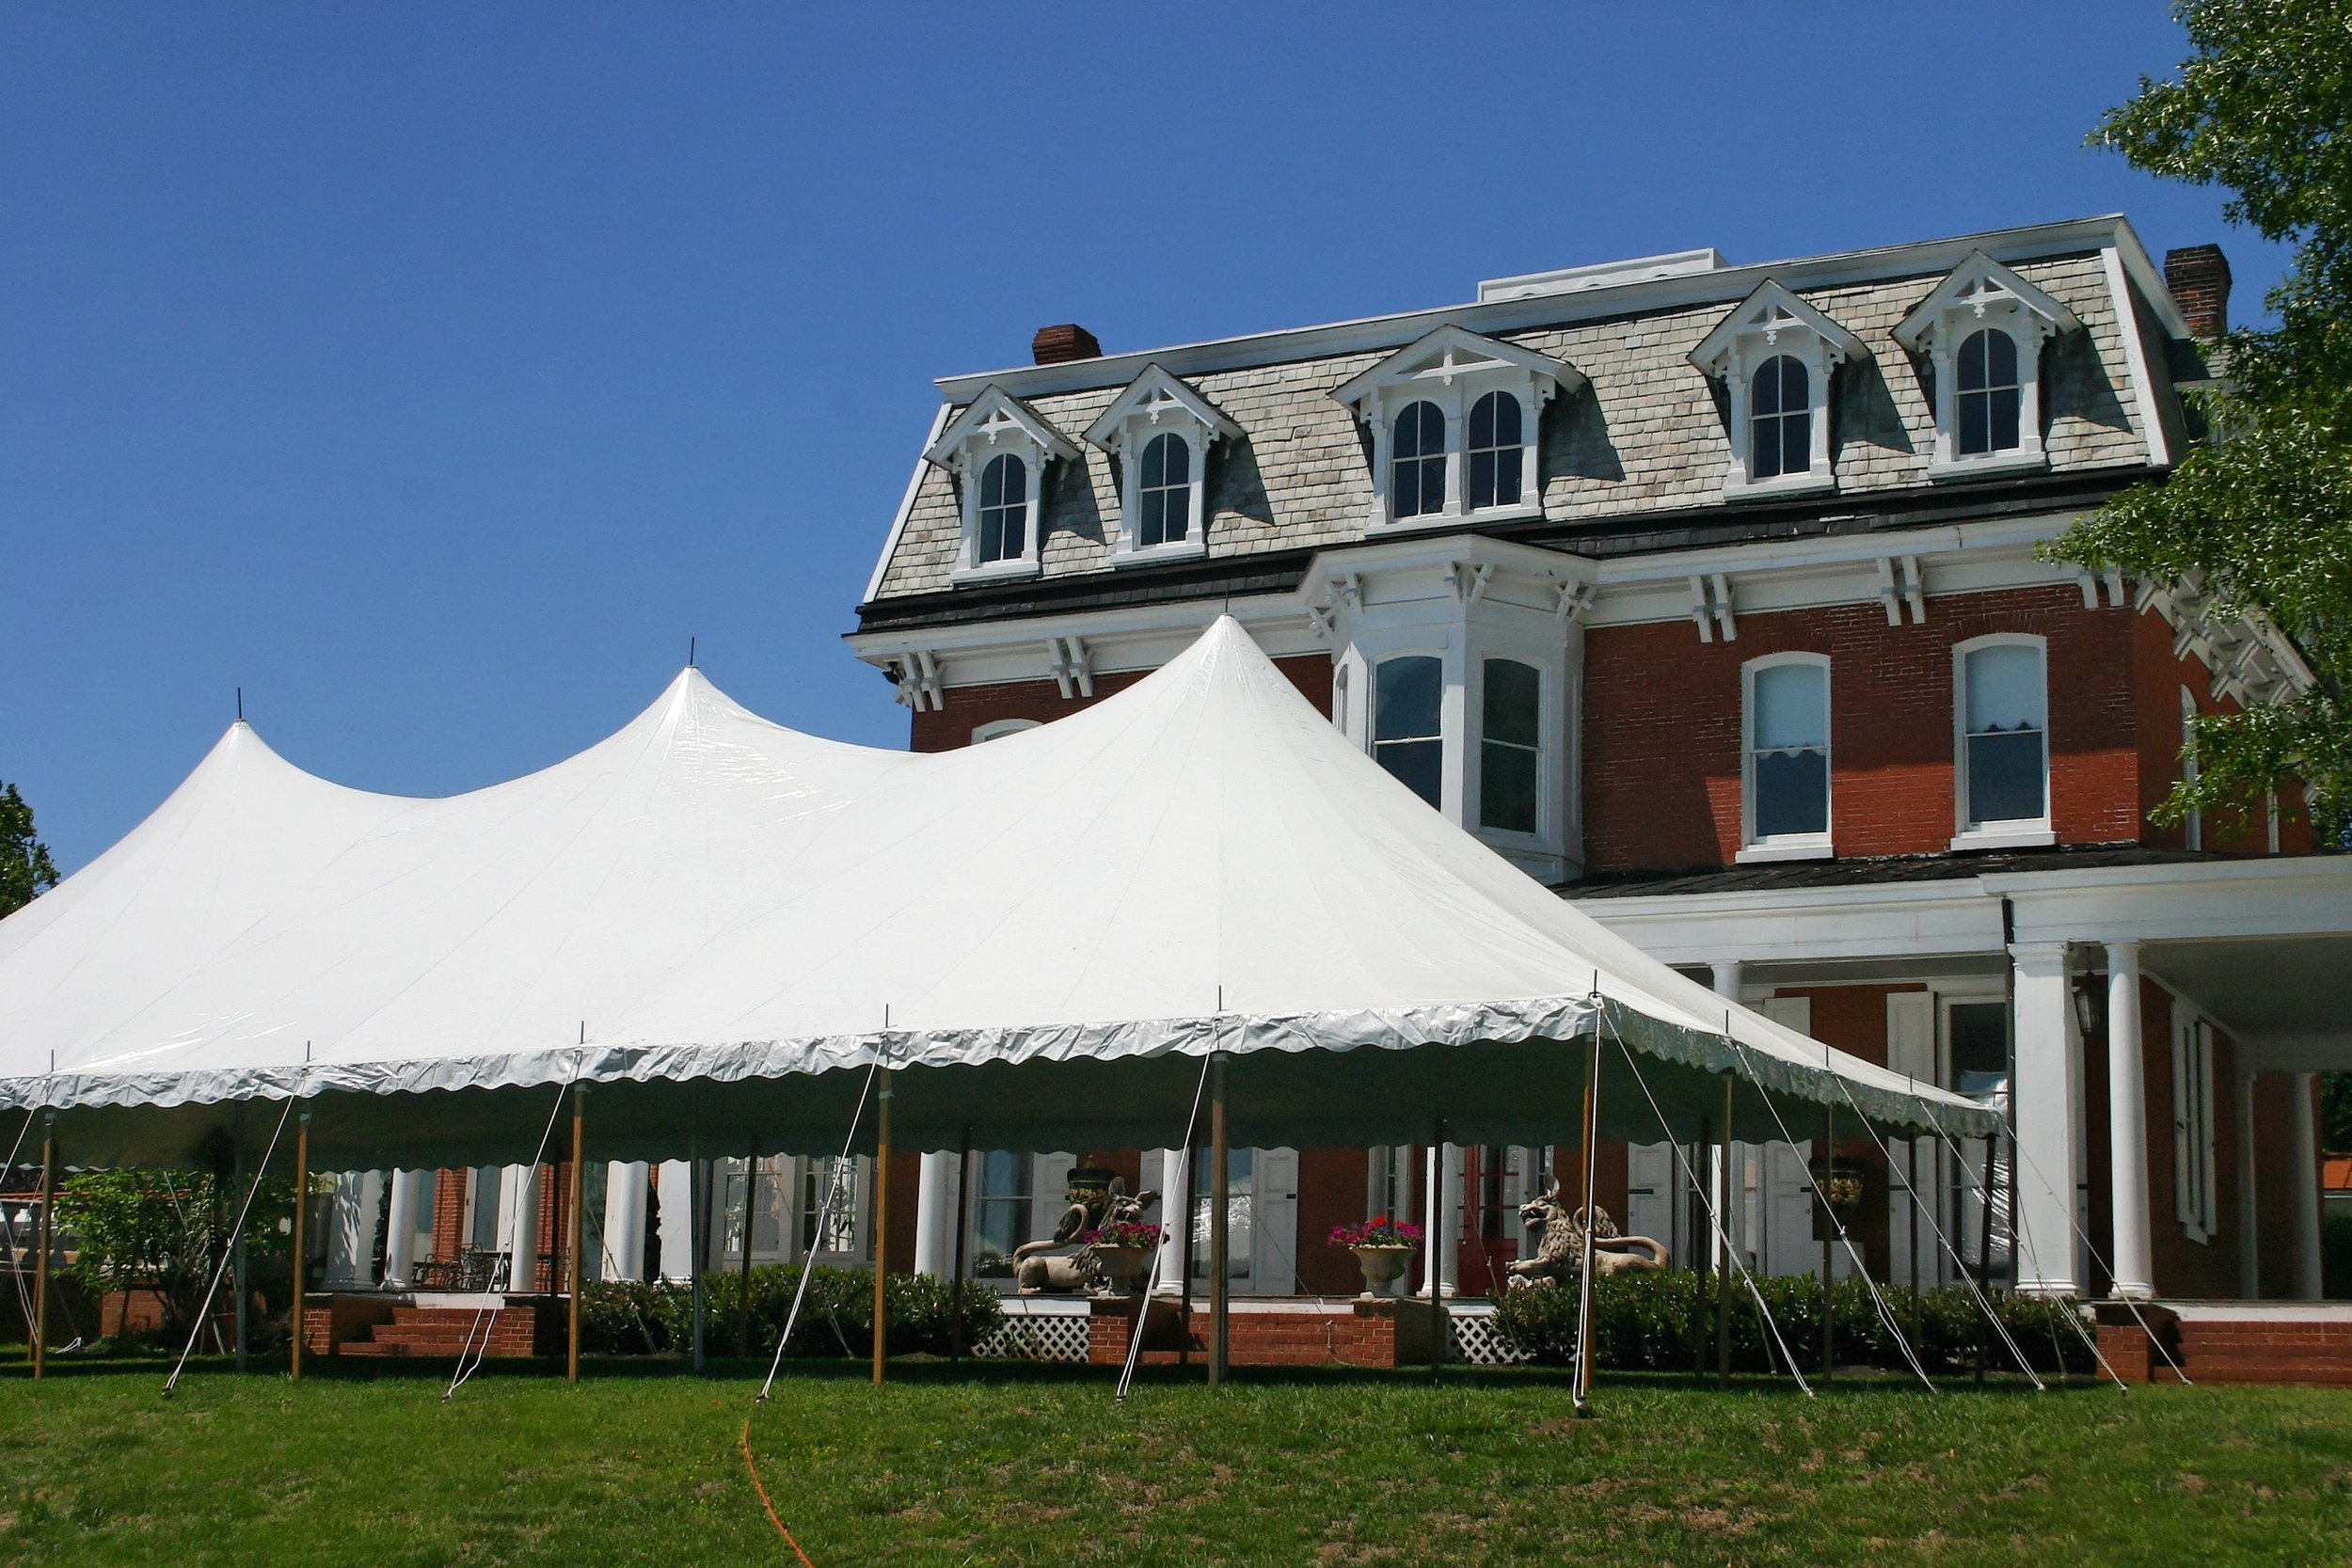 Tents for rent in Hershey